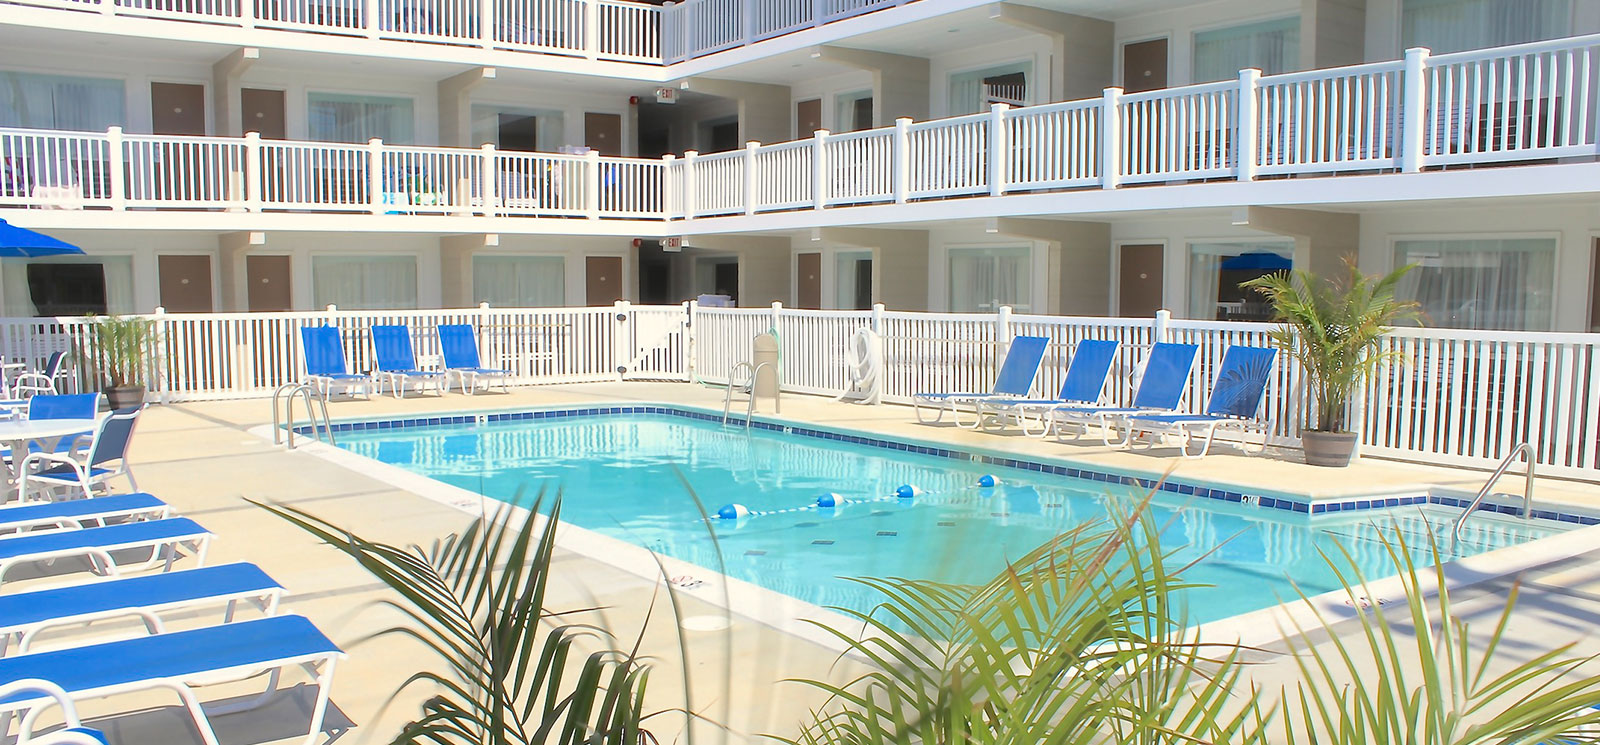 Spring Weekend Package by The Oceanus at Rehoboth Beach